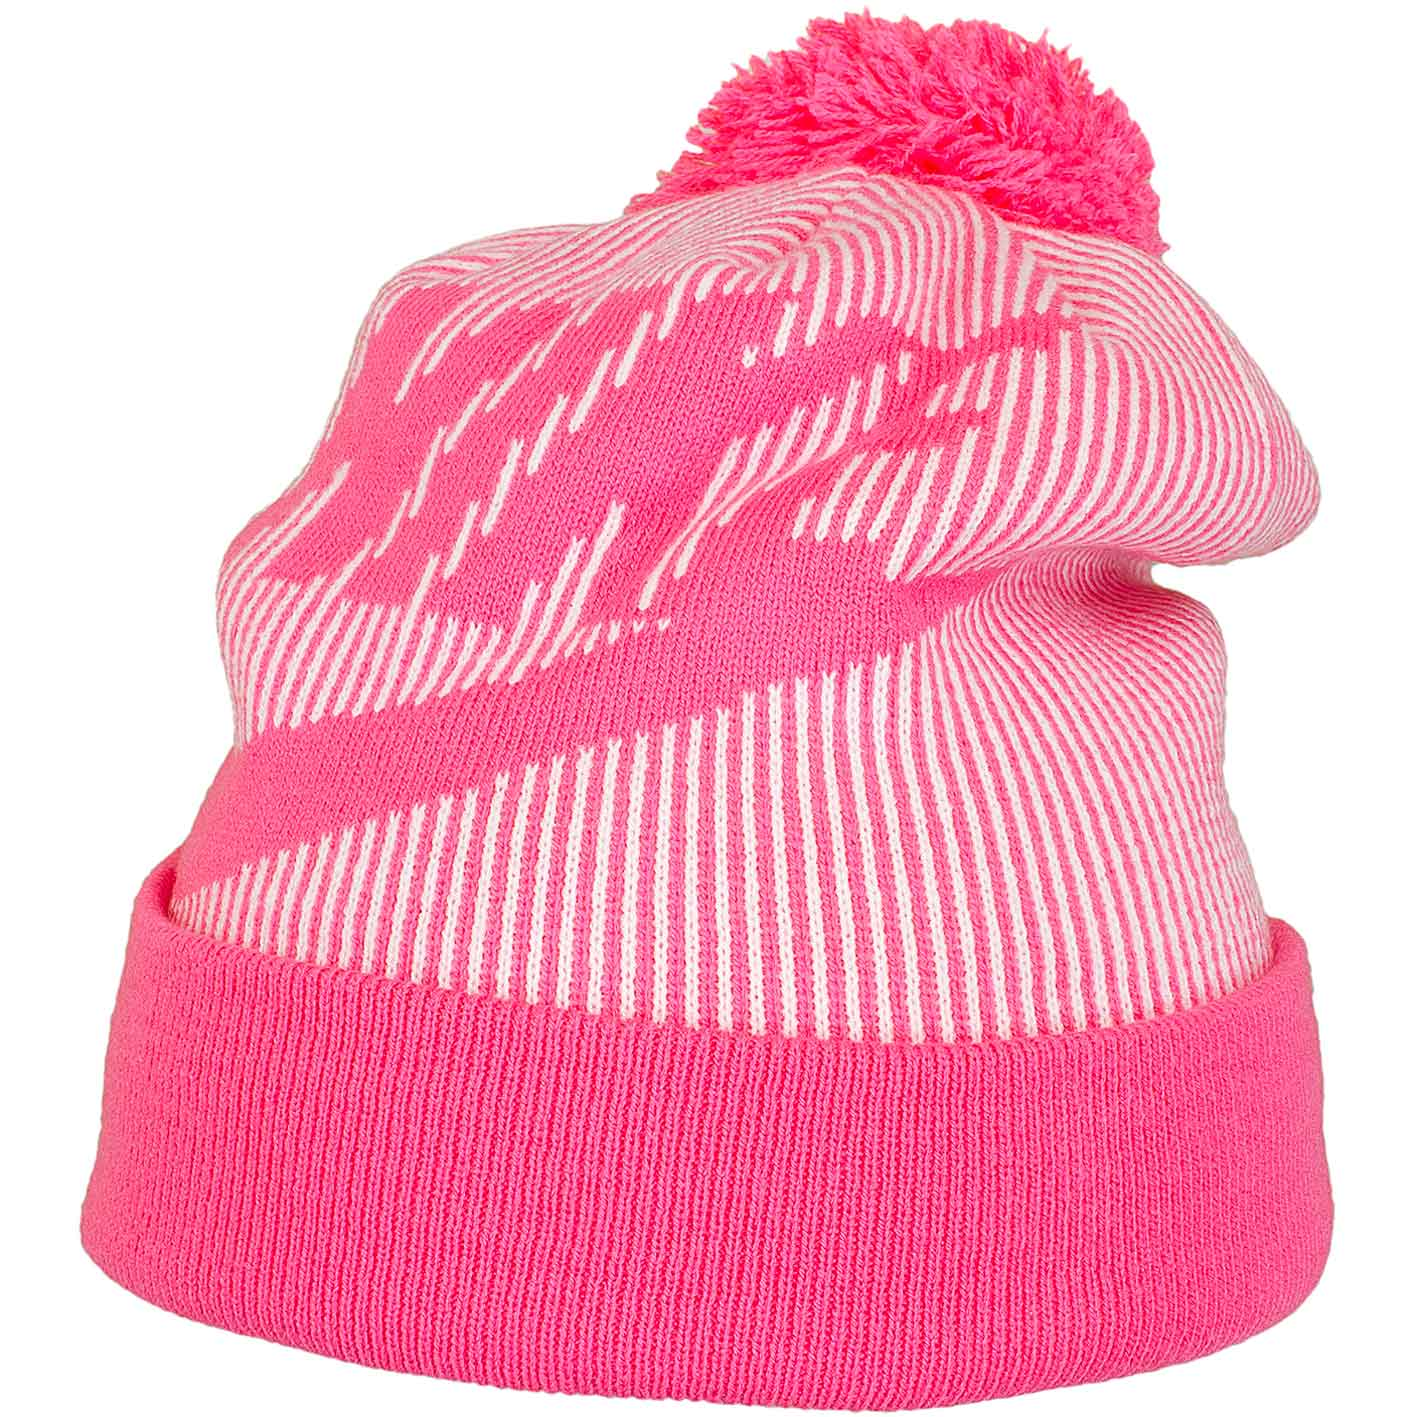 c5975e1f635 ... cap hat girls youth fire pink size 4 6x ebay 76743 f02da purchase nike  damen beanie cuffed pom pink weiß e3b19 c2b14 ...